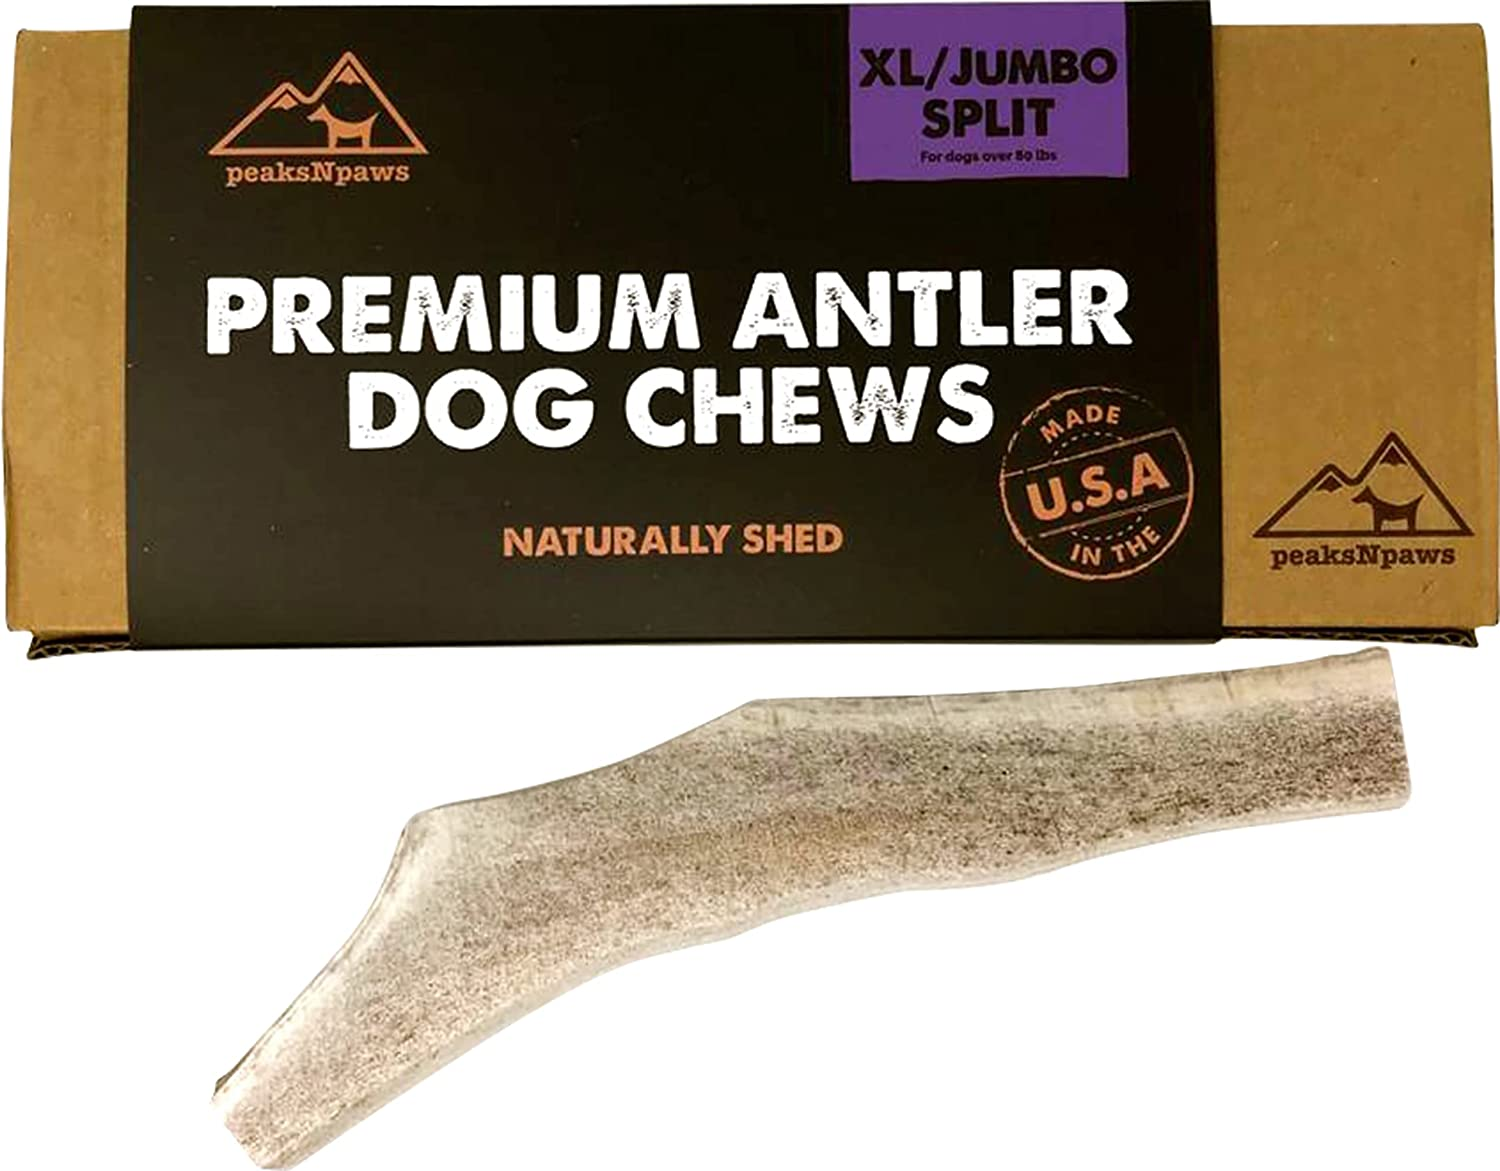 peaksNpaws - Split Antler Dog Treats - Natural Grade A Elk Antlers - Dog Chews for Aggressive Chewers - XL/Jumbo, 1 Chew - No Additives or Preservatives - Nutritious and Delicious, Made in USA